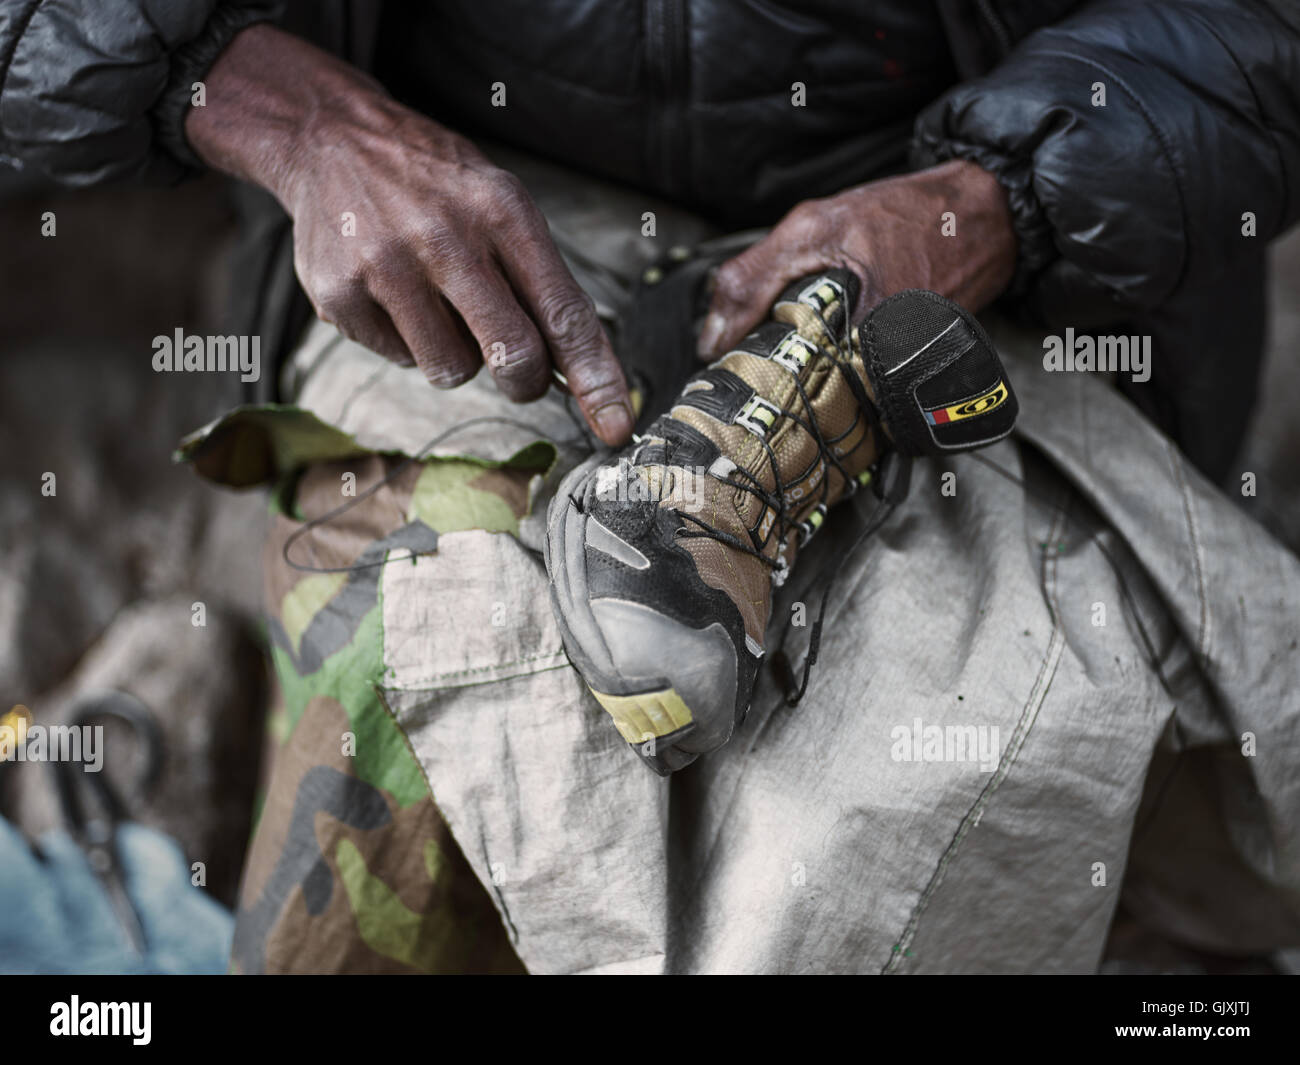 A Nepalese man repairs shoes in Namche, Nepal - Stock Image